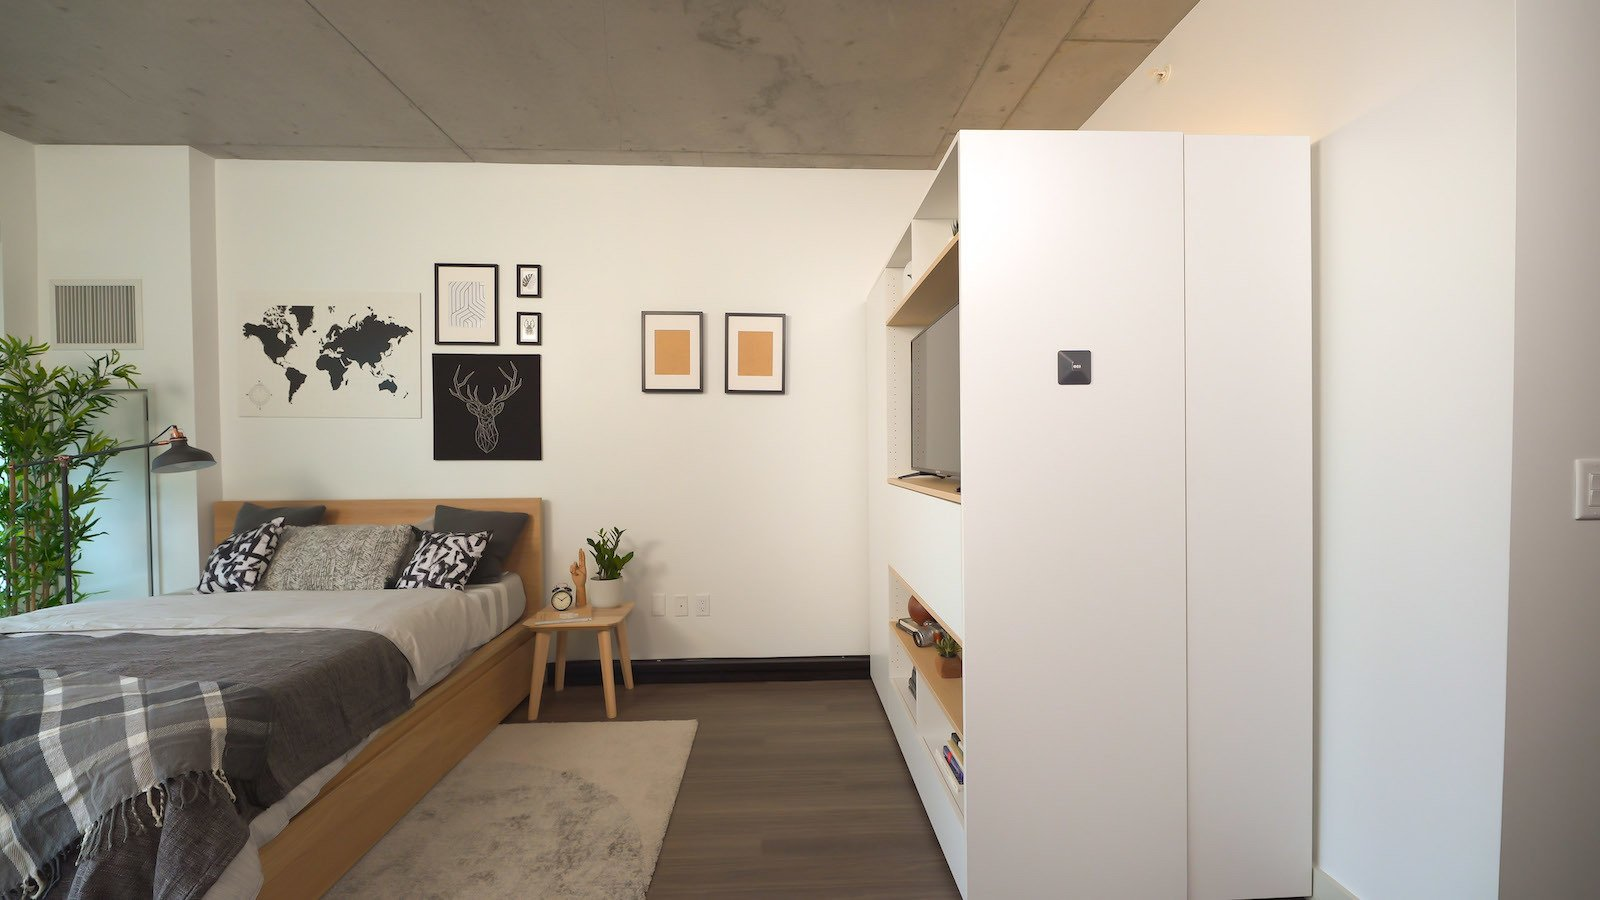 the-pocket-closet-takes-up-the-space-of-two-wardrobes-yet-it-can-serve-as-a-walk-in-closet-desk-entertainment-center-or-dining-bar.jpg